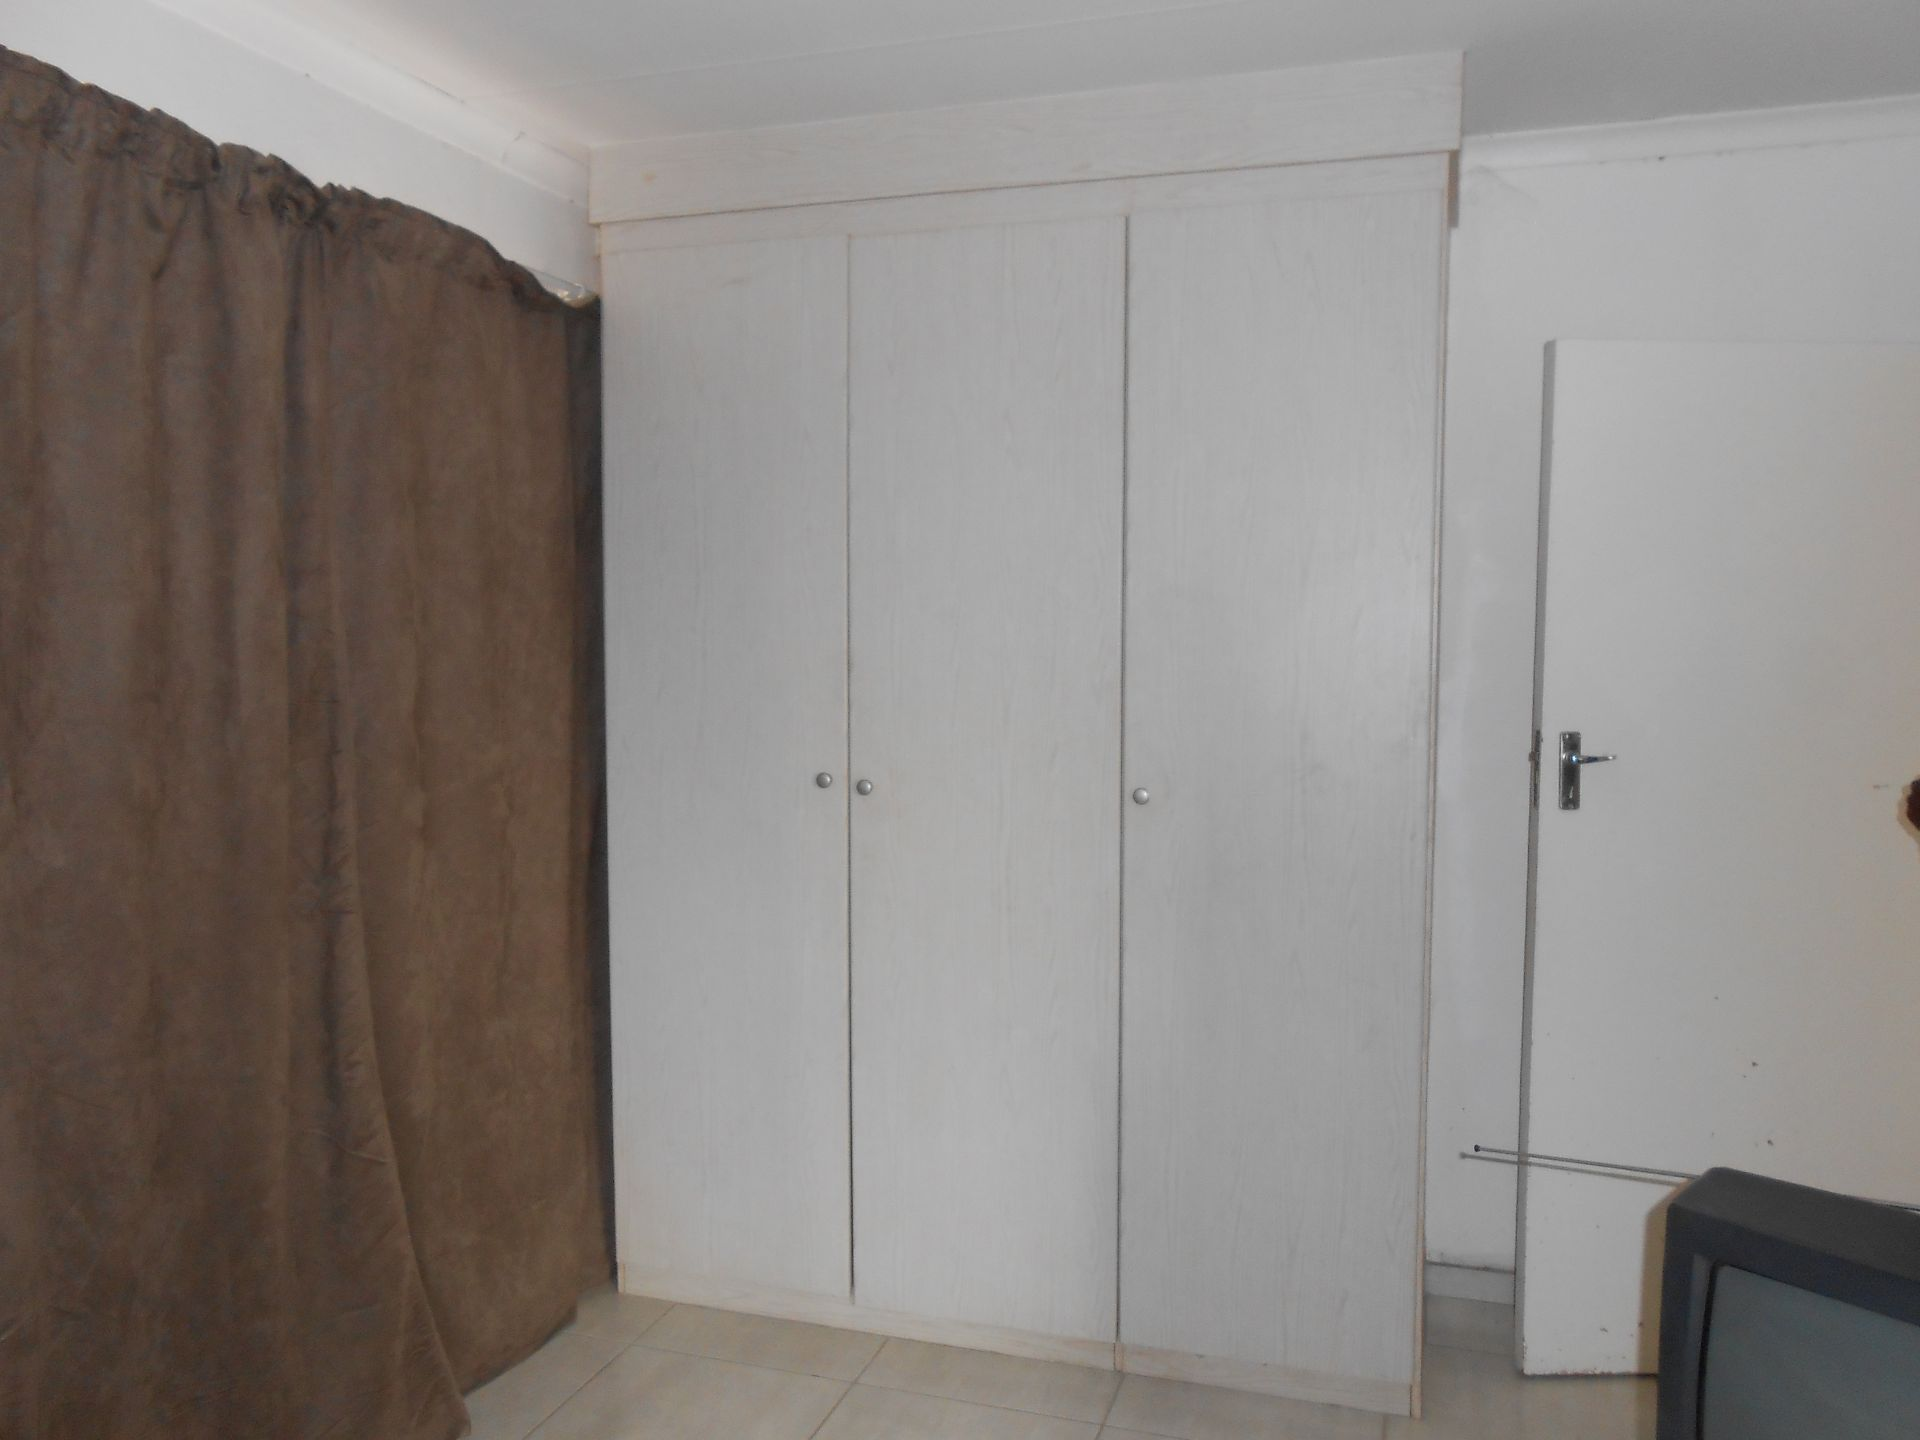 Cosmo City property for sale. Ref No: 13532301. Picture no 10